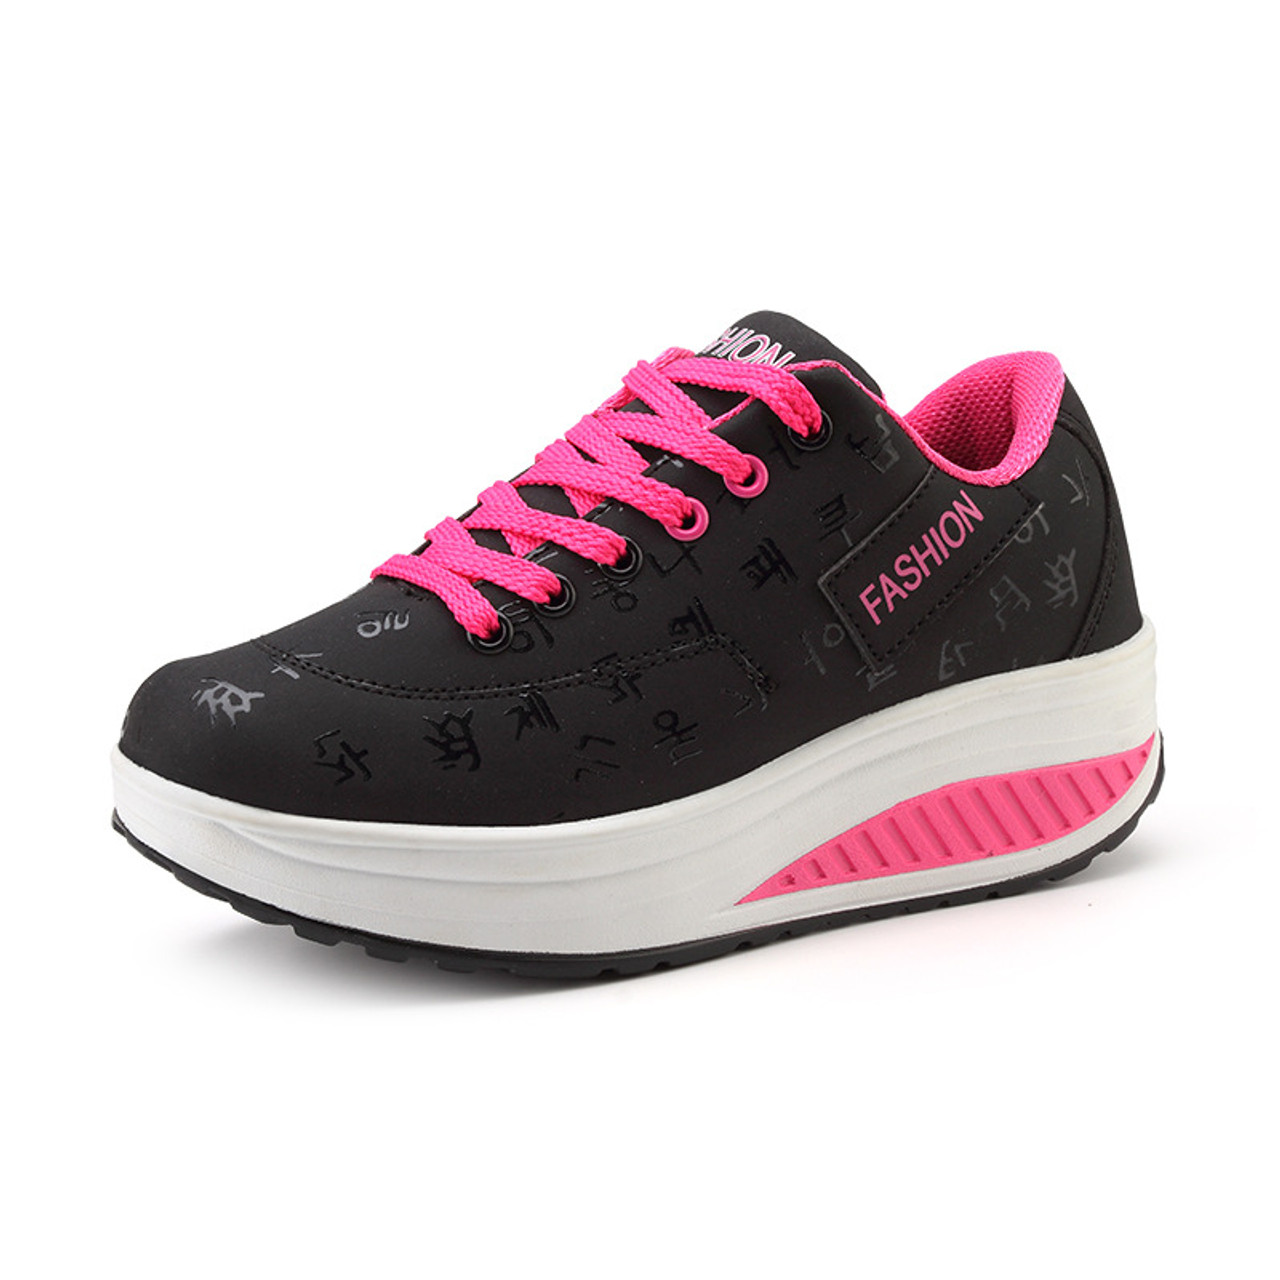 e6527997e892 ... Bolangdi New Platform Chaussure Femme Sport Shoes Woman Leather Lady Sports  Shoes Summer Running Shoes Women s ...